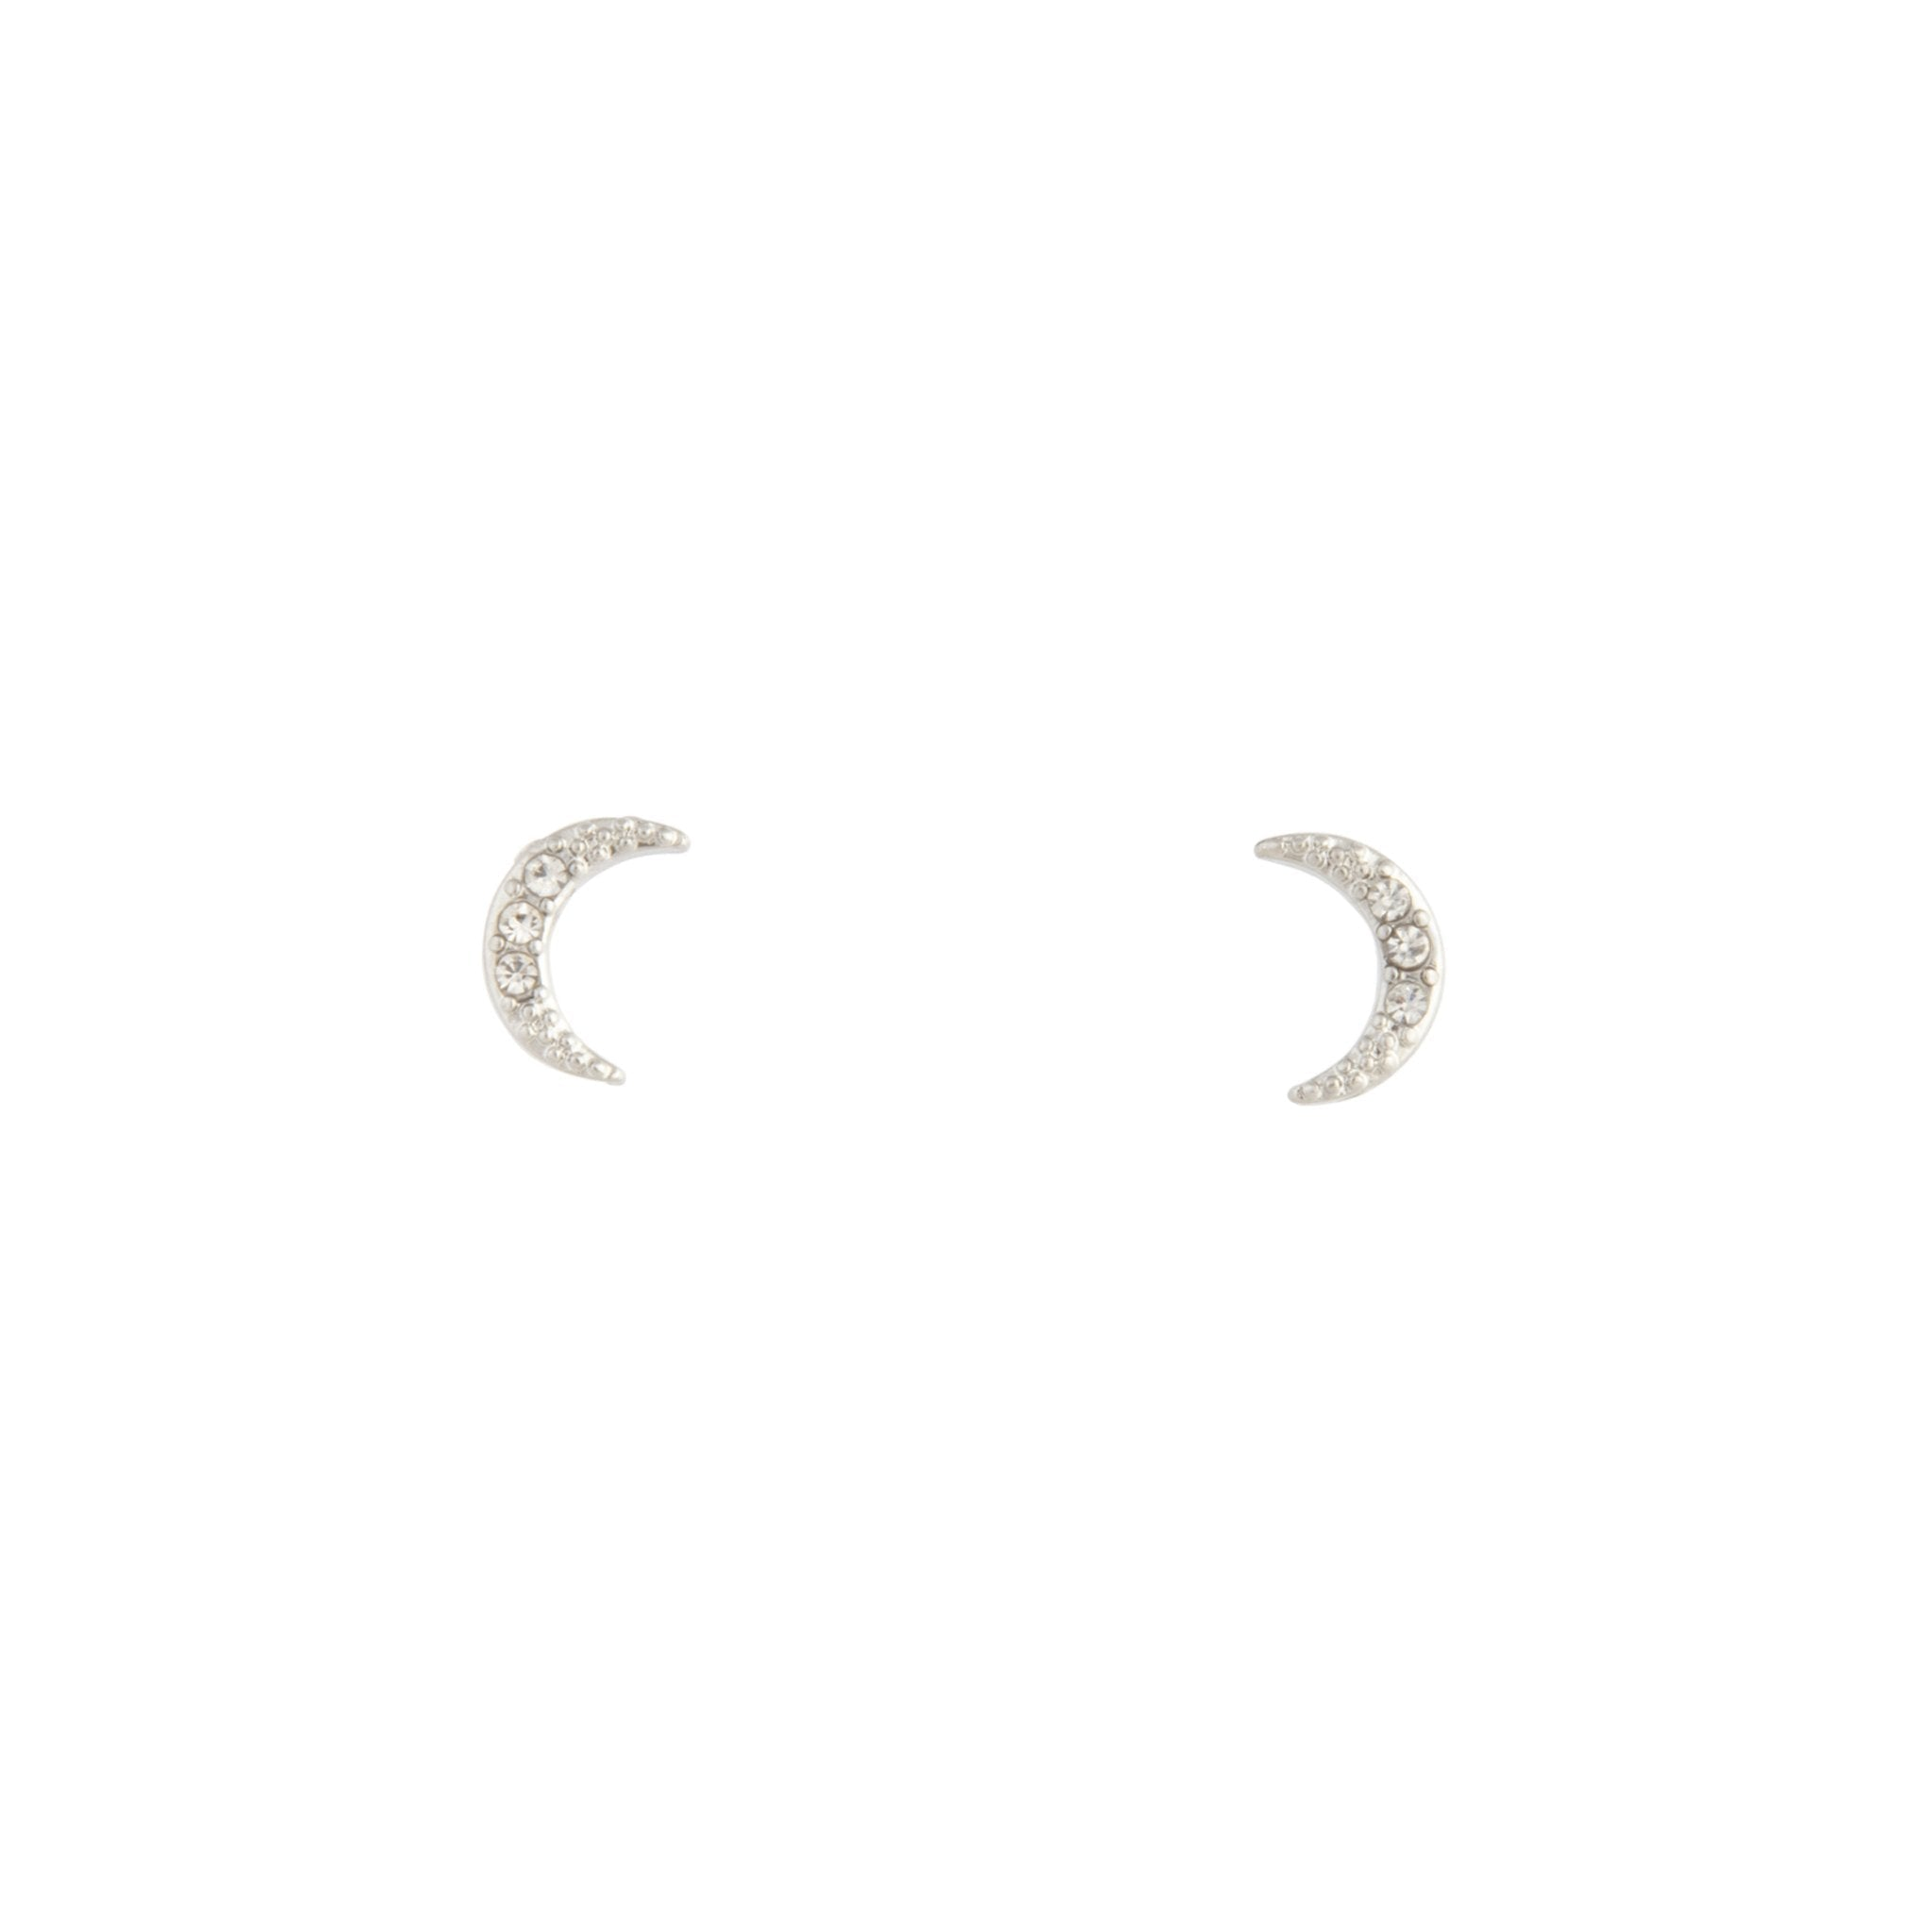 Rhodium Diamante Cresent Stud Earring